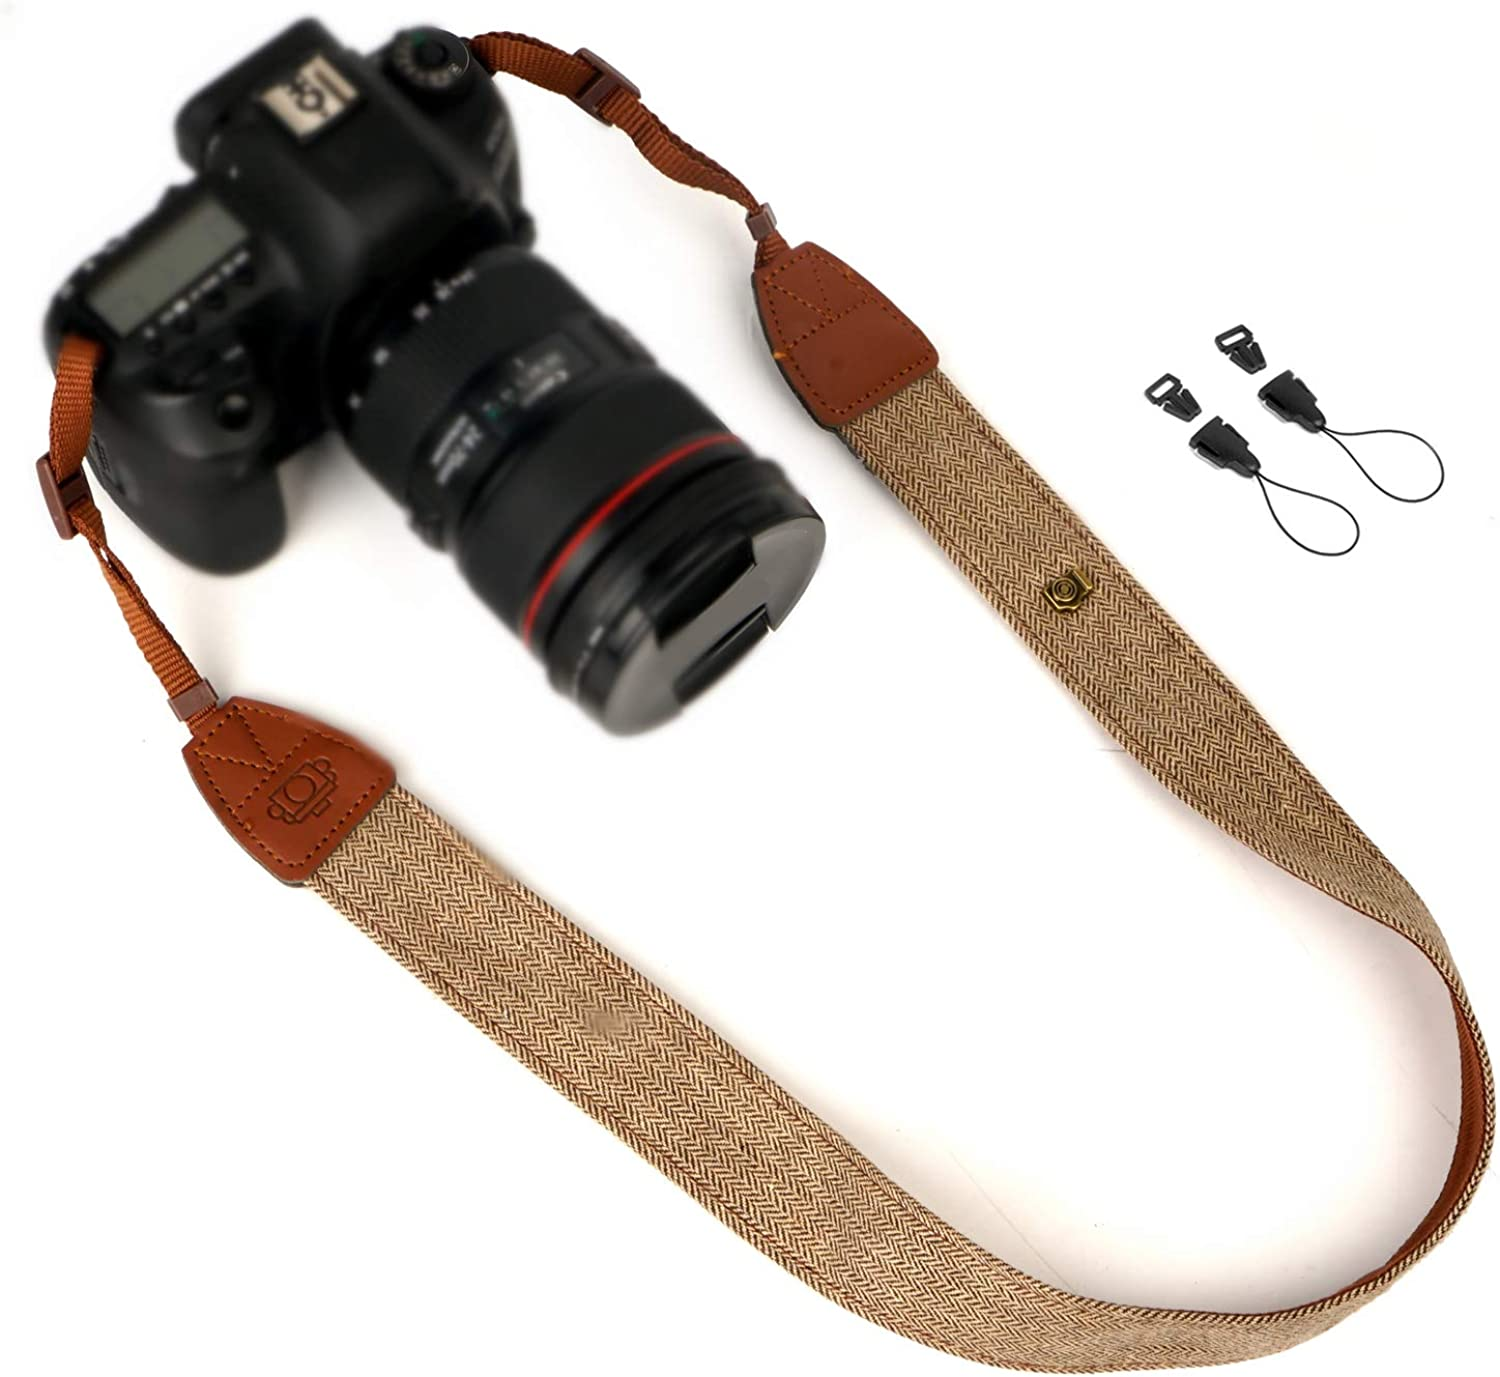 Max 73% OFF WANBY Canvas Neck Shoulder Limited price Camera Release with Buckl Strap Quick